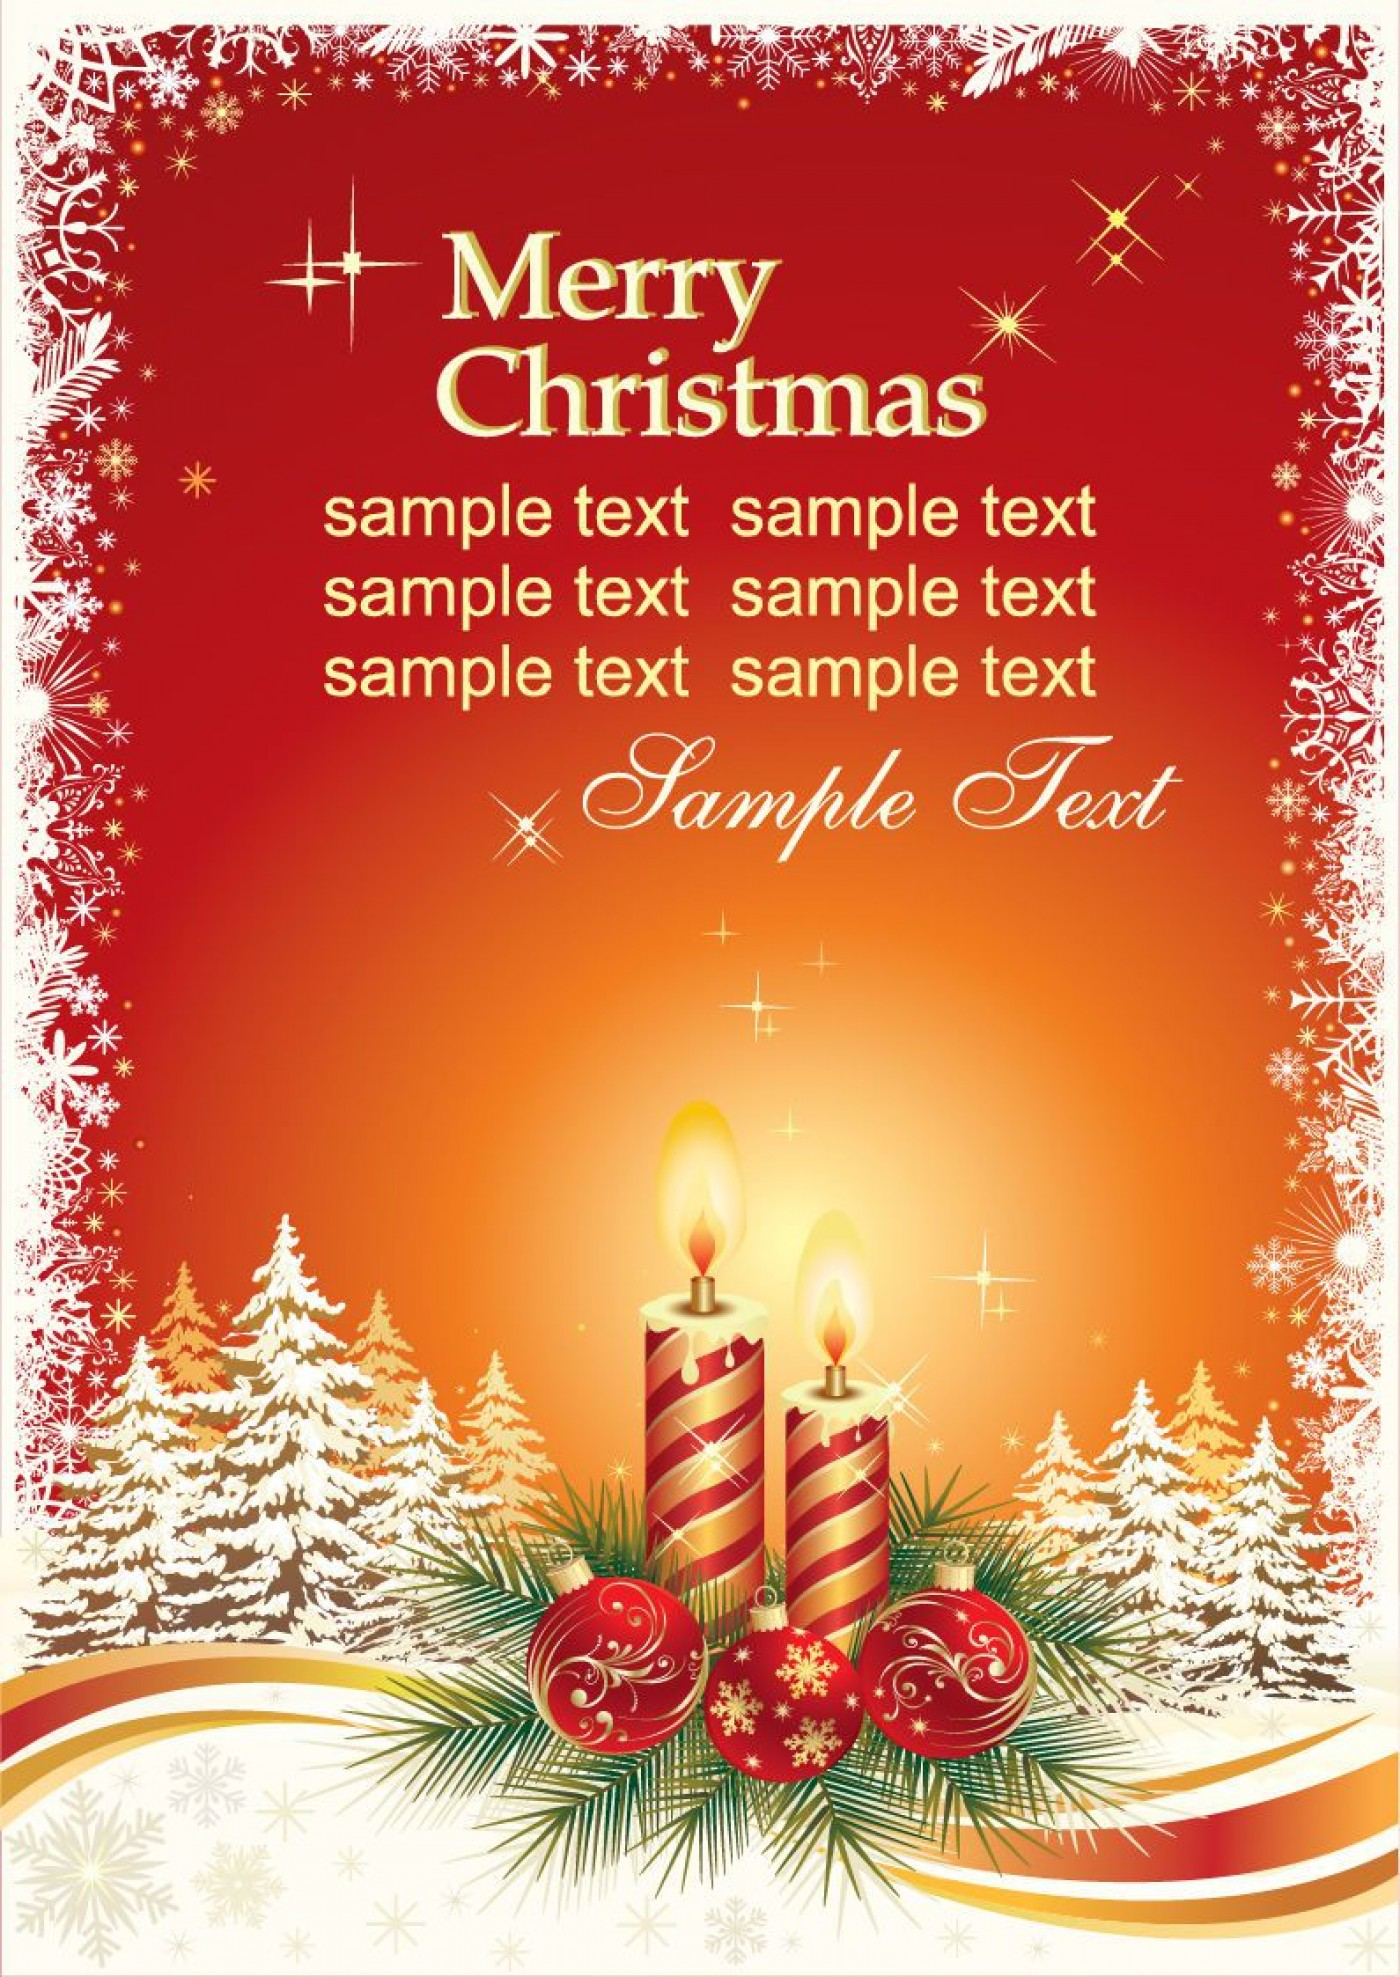 006 Staggering Christma Card Template Free Download Highest Clarity  Greeting Photoshop1400